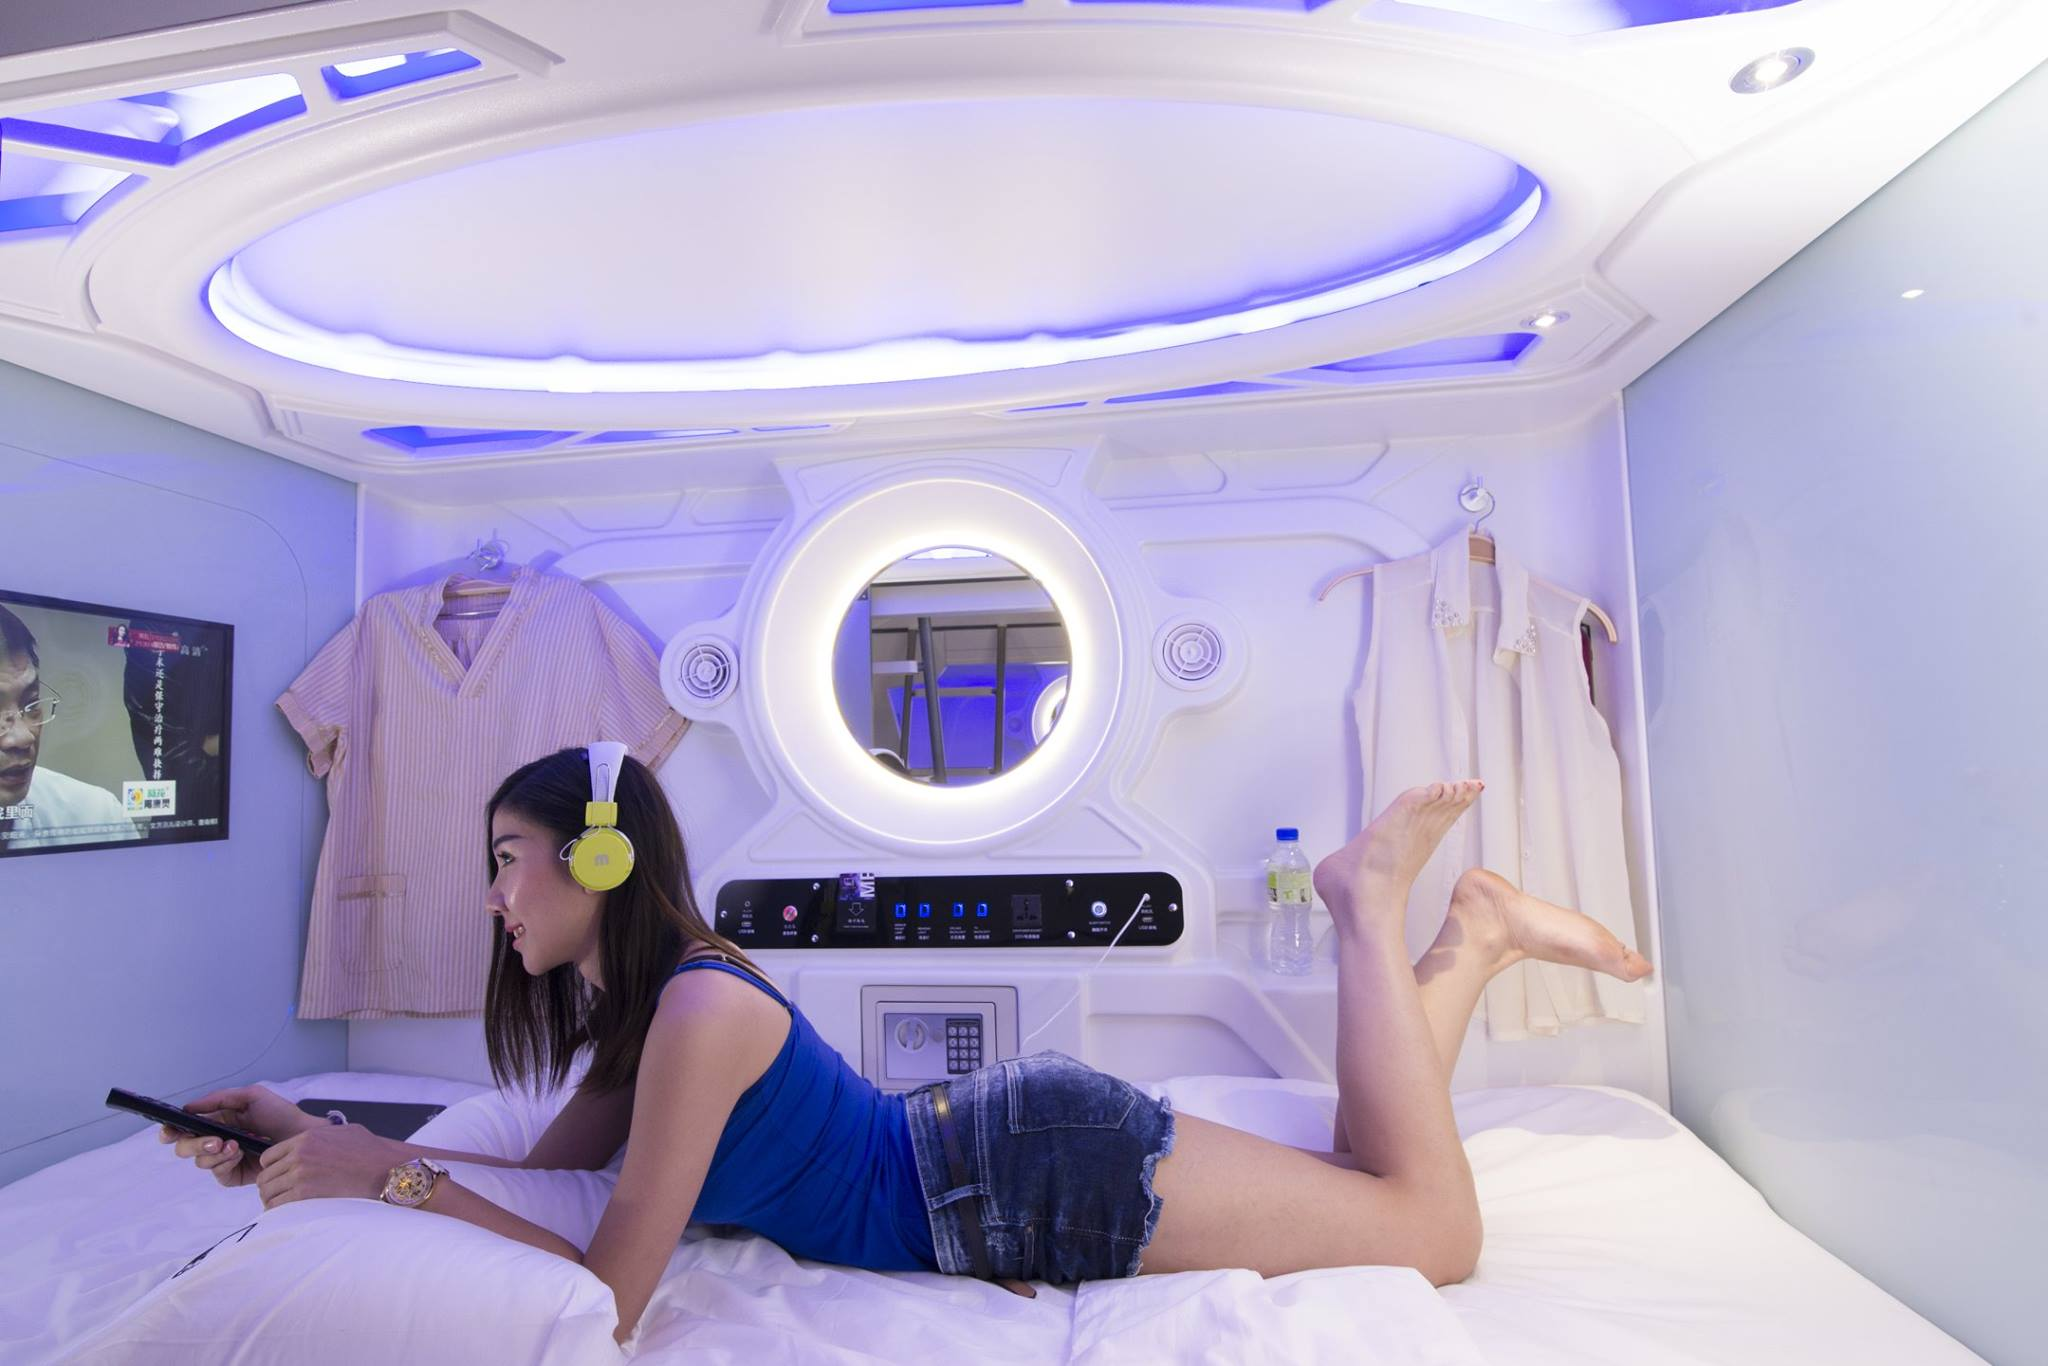 source: Time Capsule Hotel